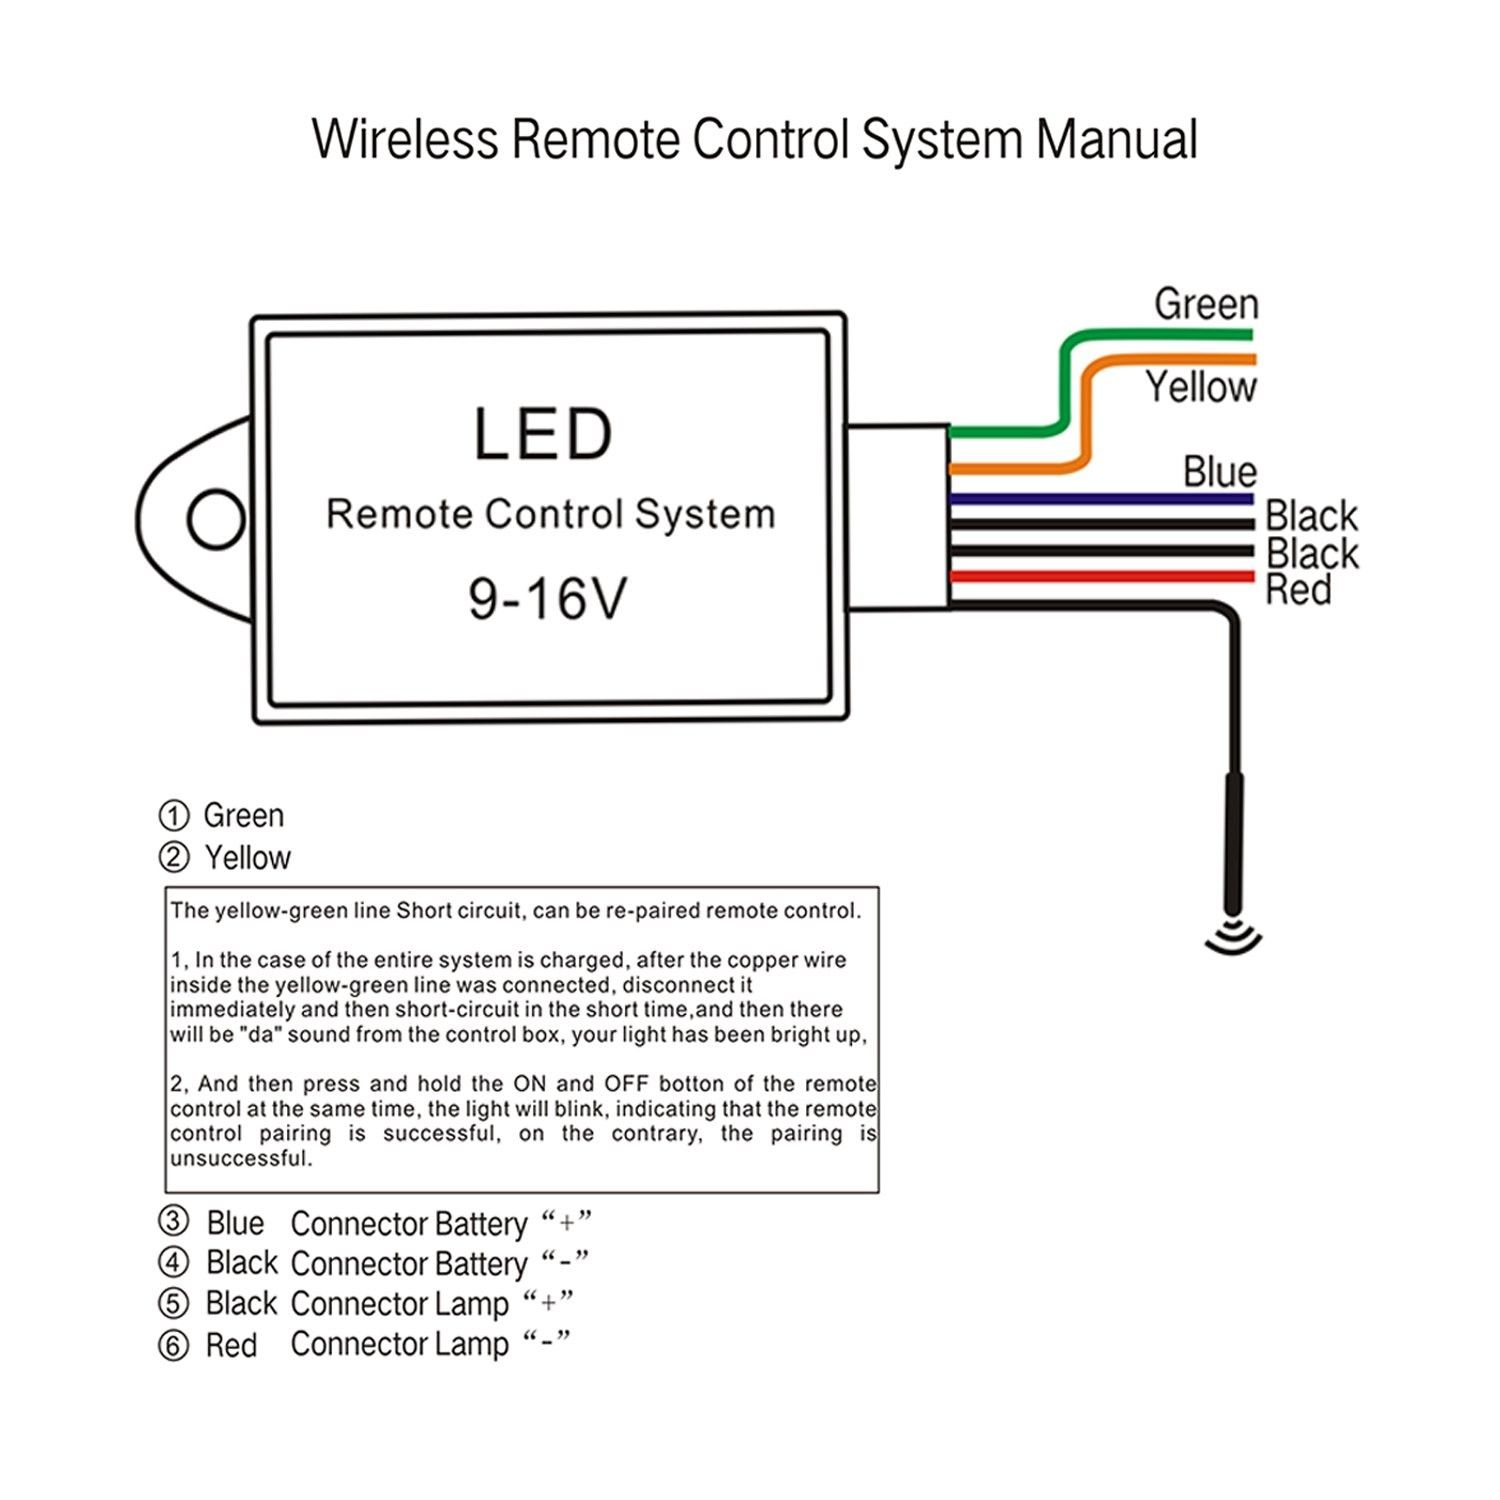 Wiring Order For A Traveller Remote Control Awesome Remote Remote Control Wireless